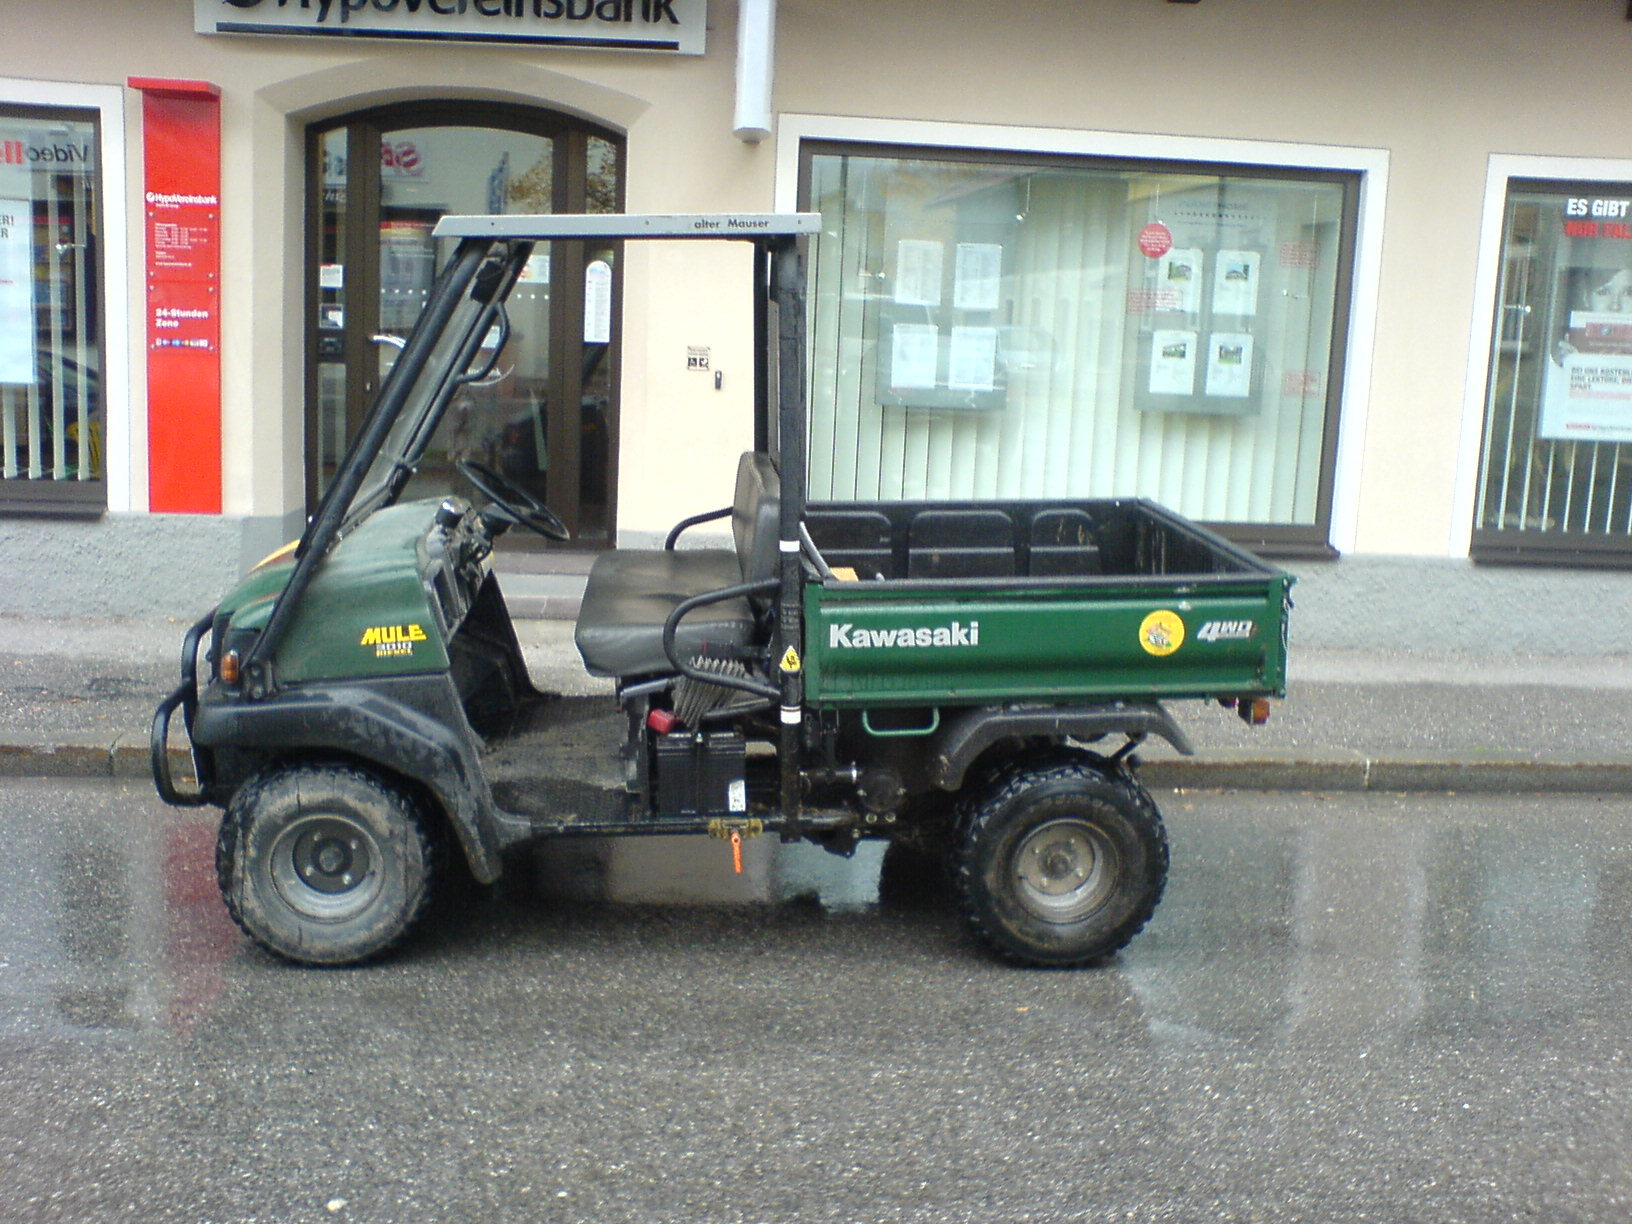 Kawasaki Mule Diesel For Sale